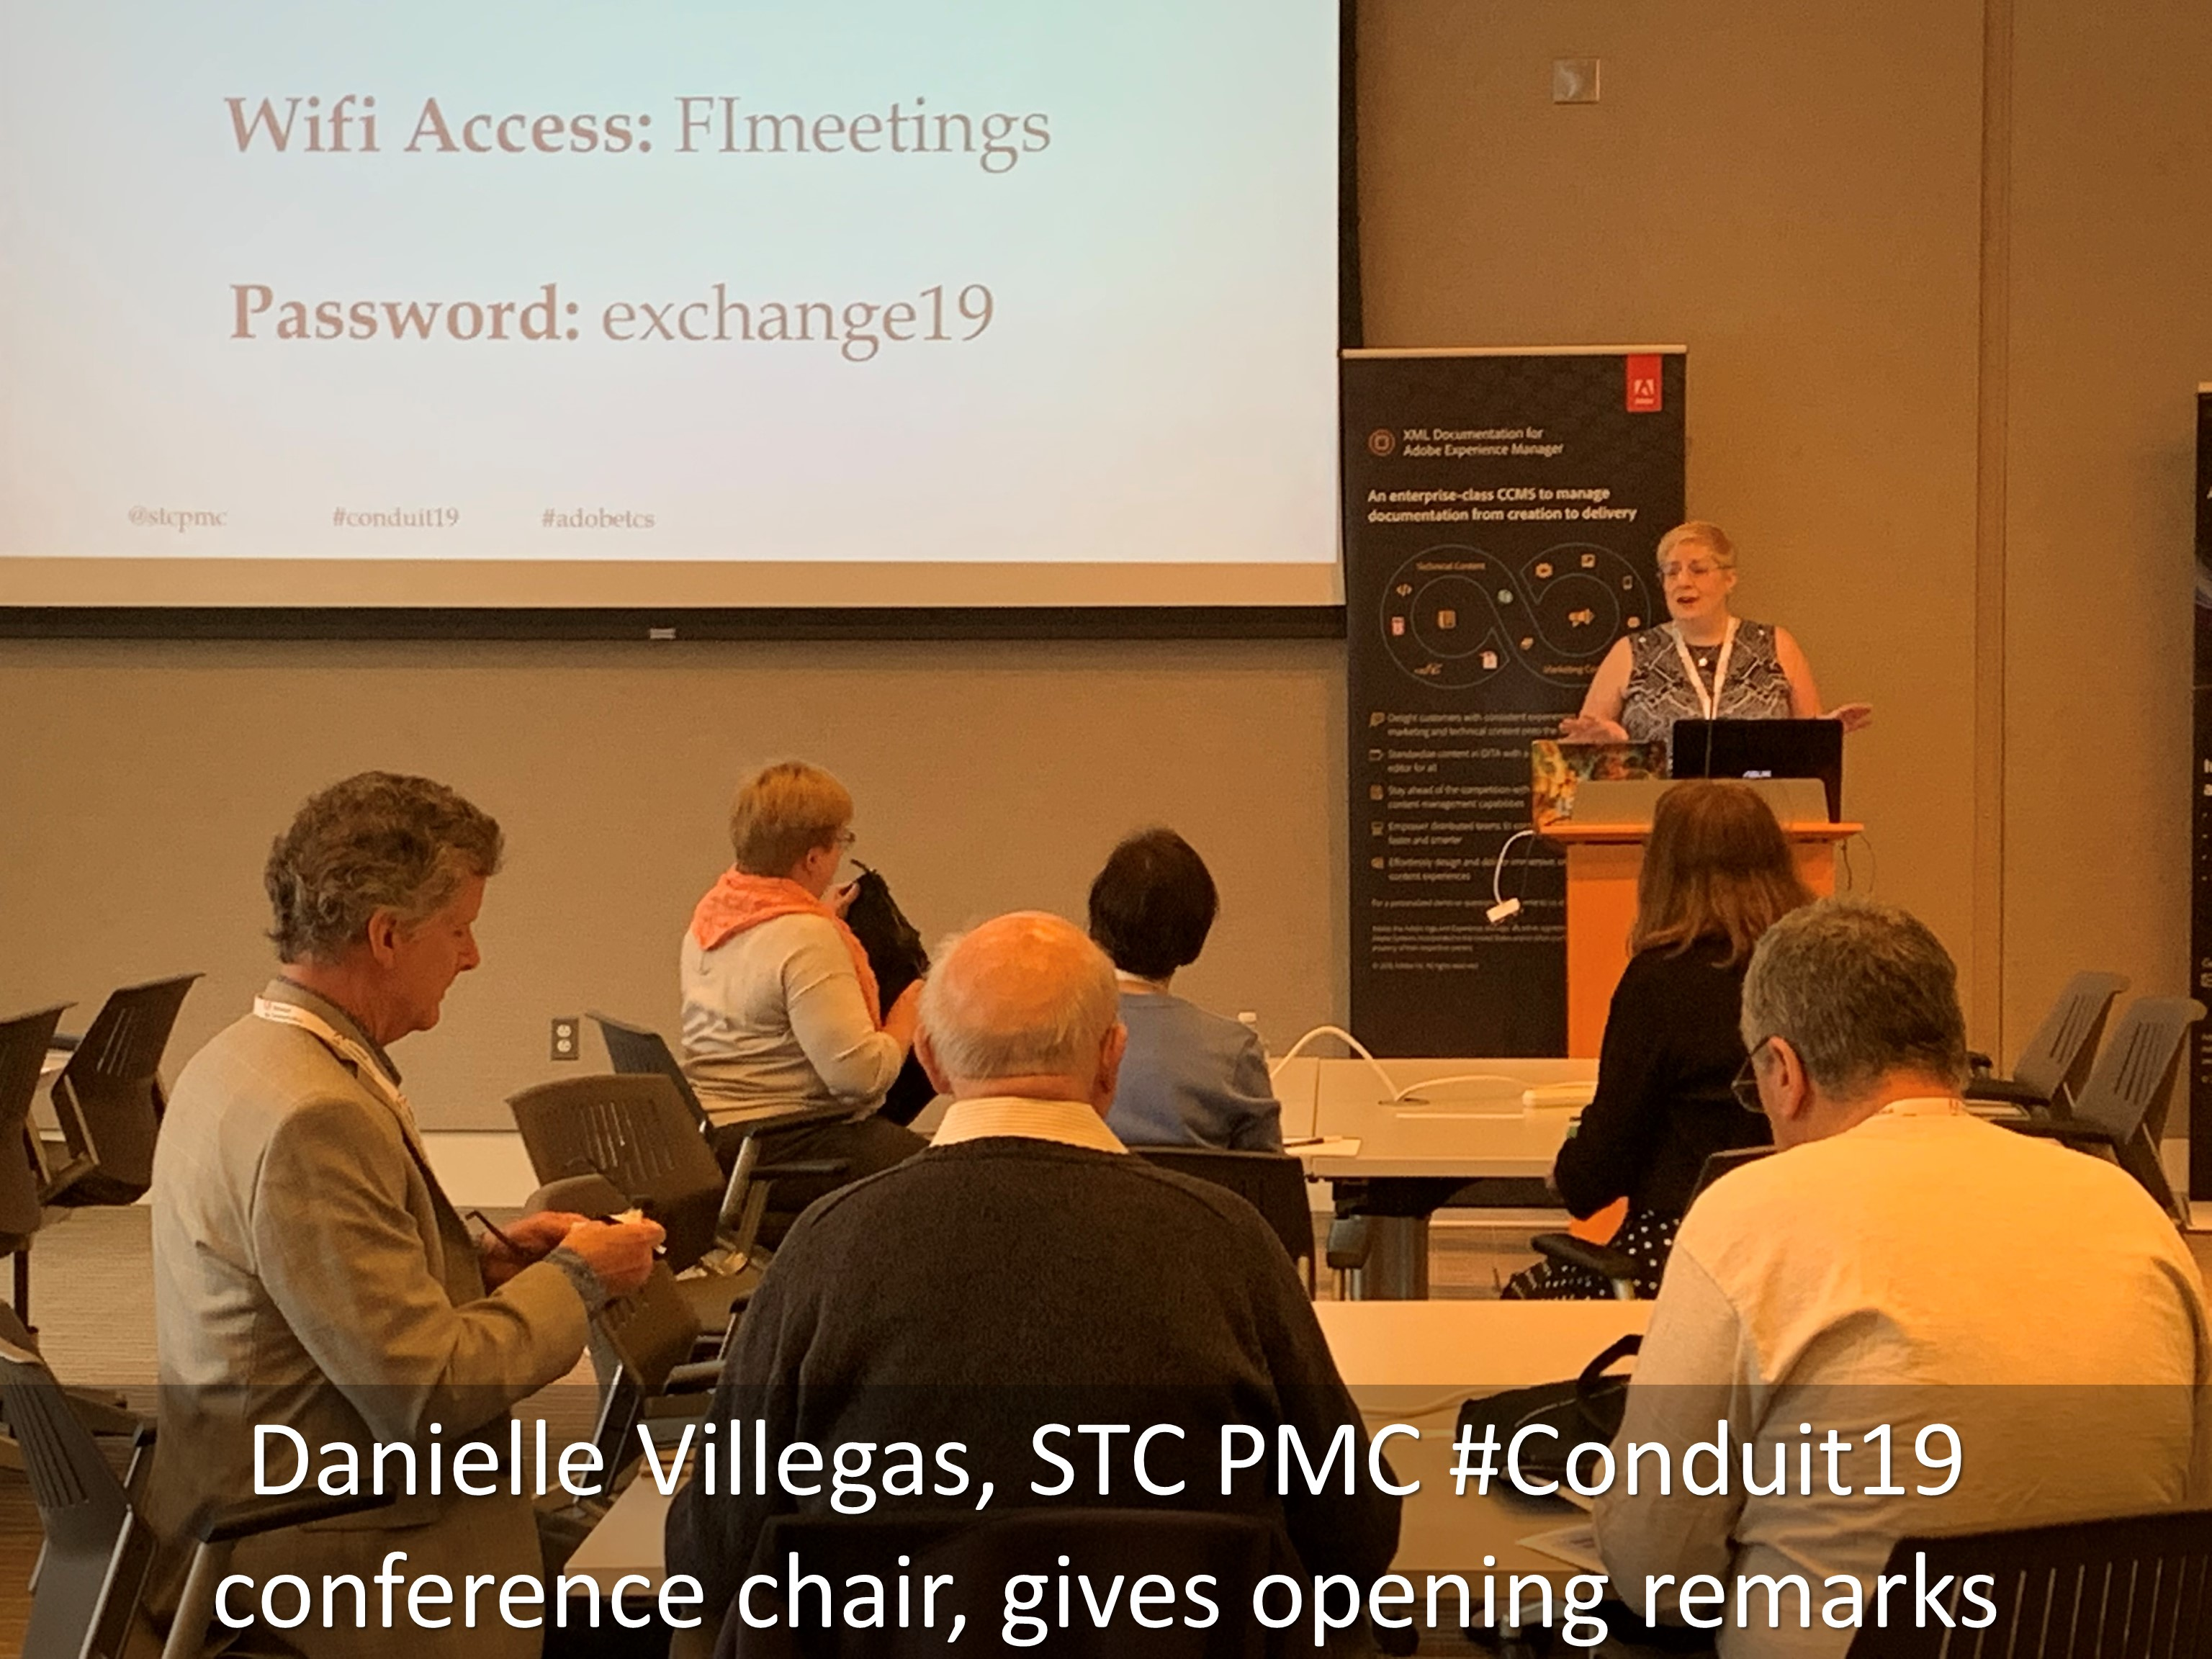 02 Danielle Villegas STC PMC Conduit19 conference chair gives opening remarks2